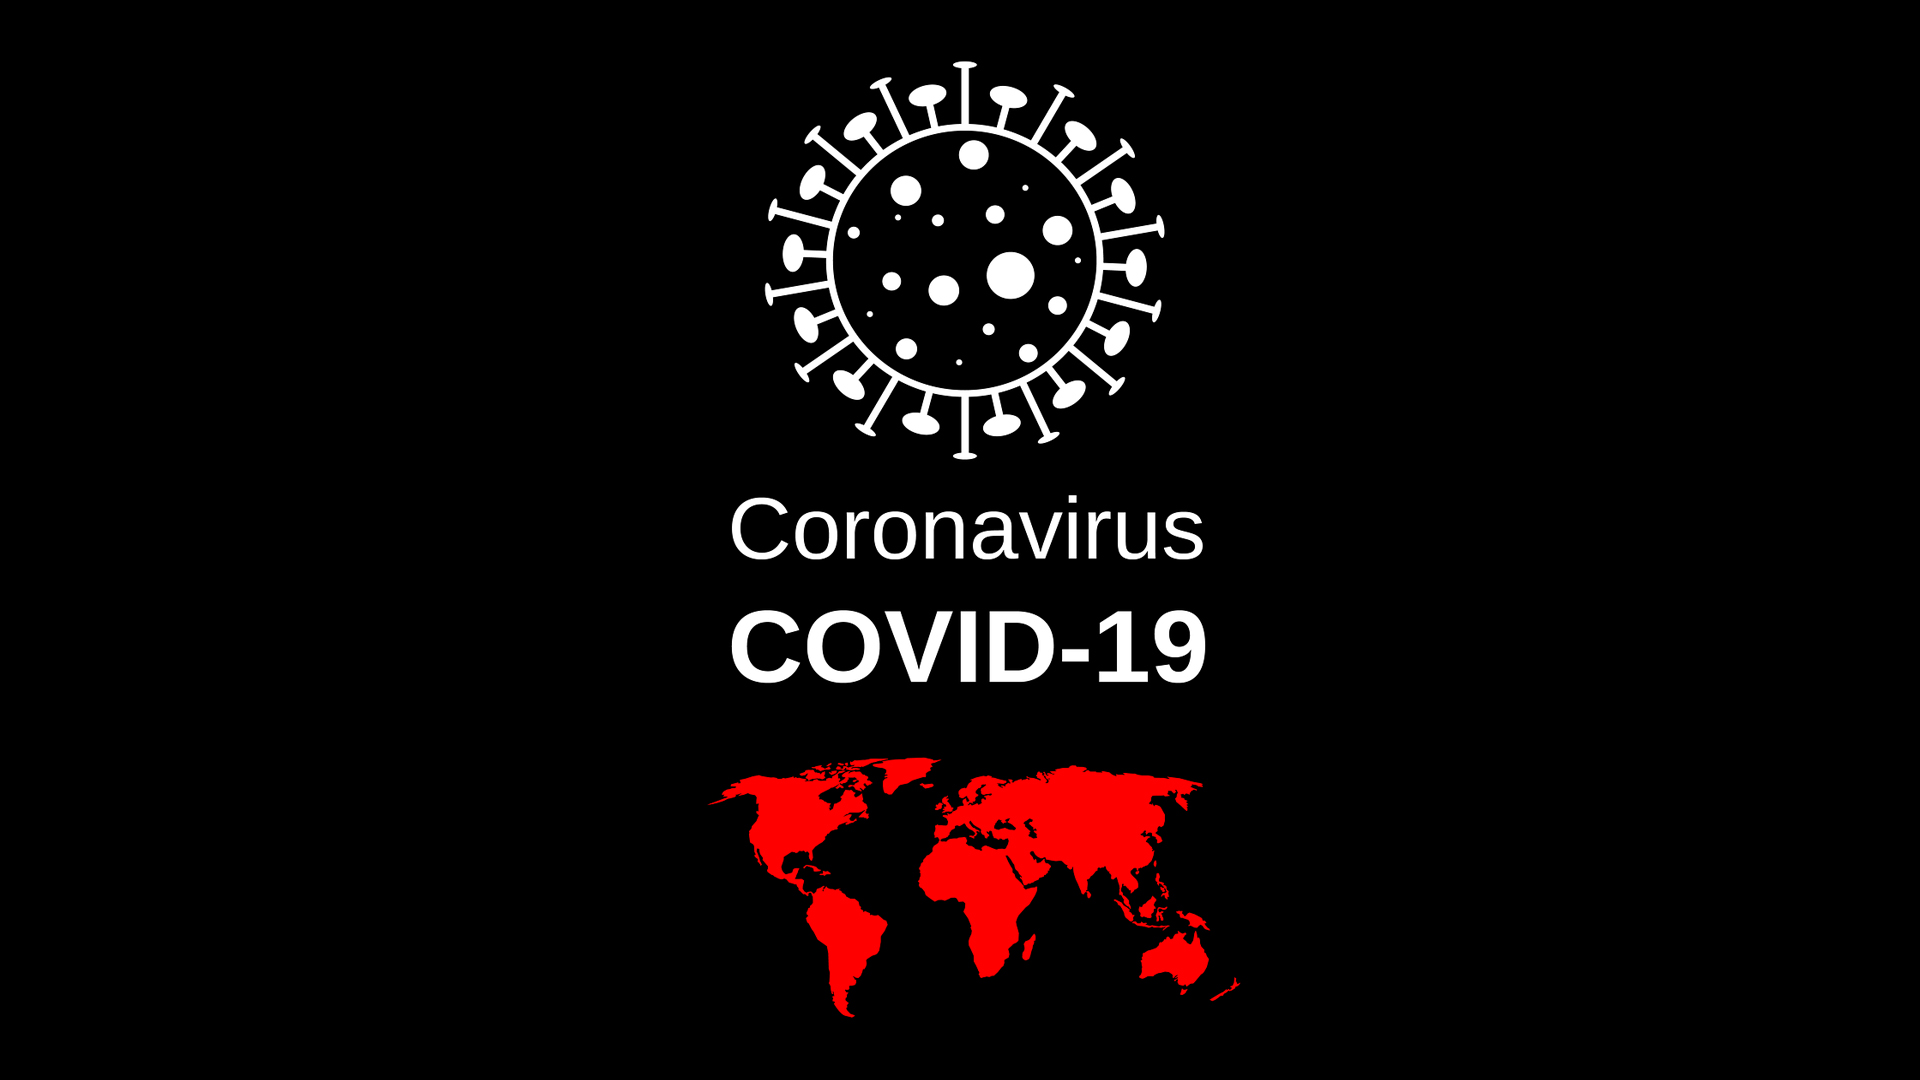 Coronavirus - Maps of the World